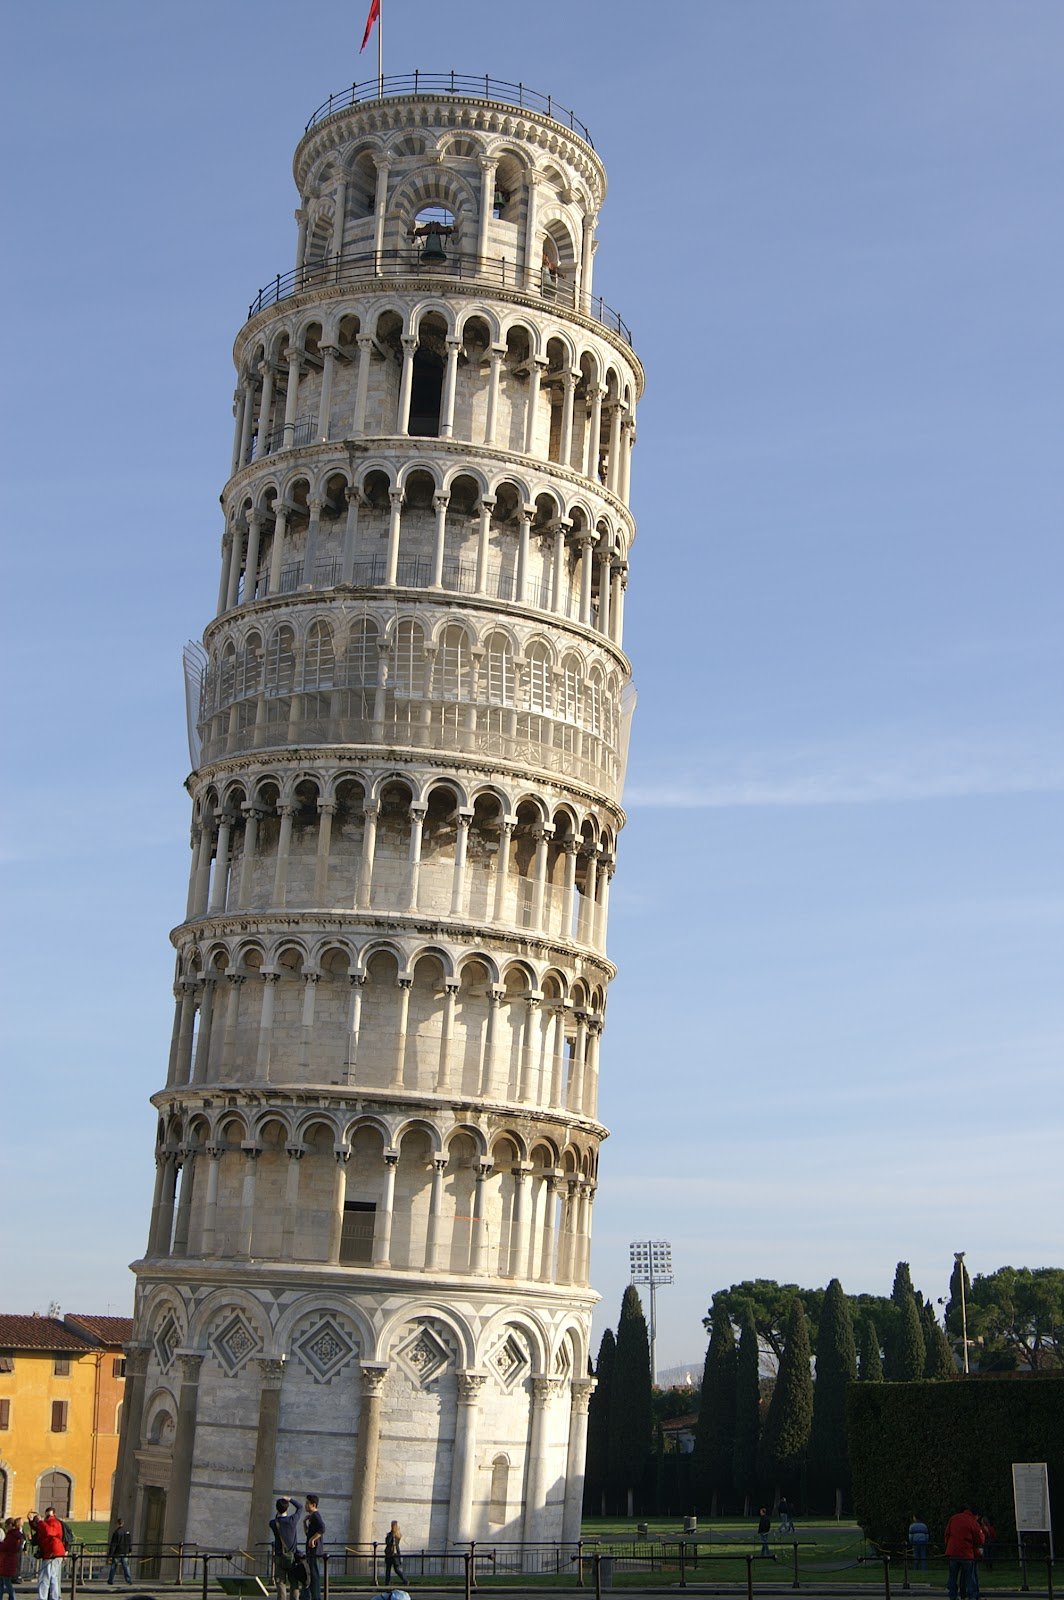 Leaning tower of pisa italy travel and tourism - Leaning tower of pisa ...